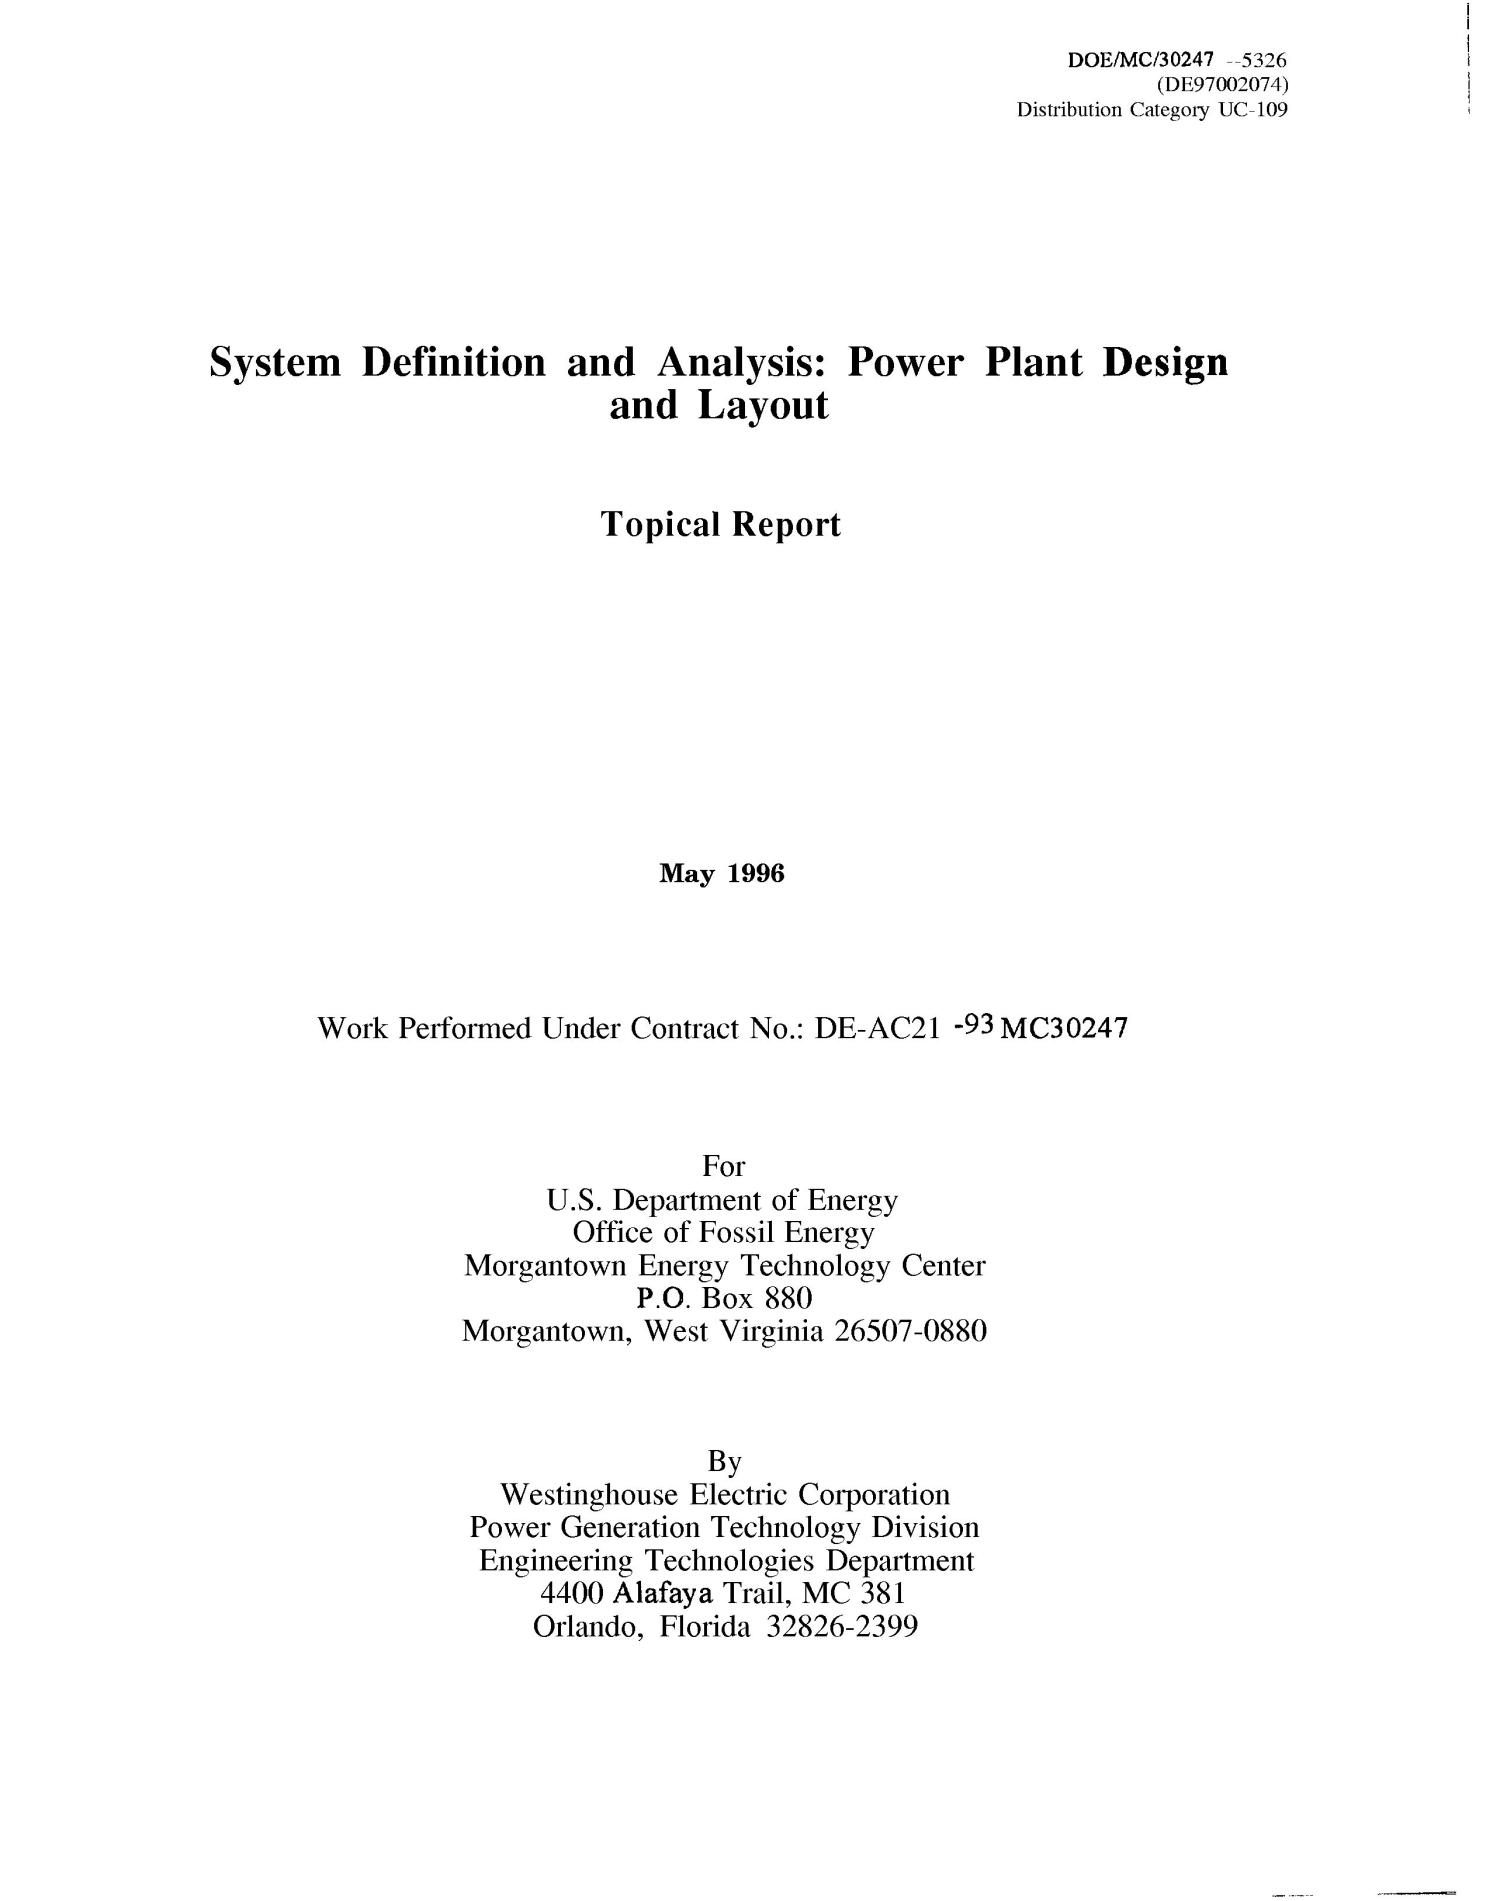 System Definition and Analysis Power Plant Design and Layout